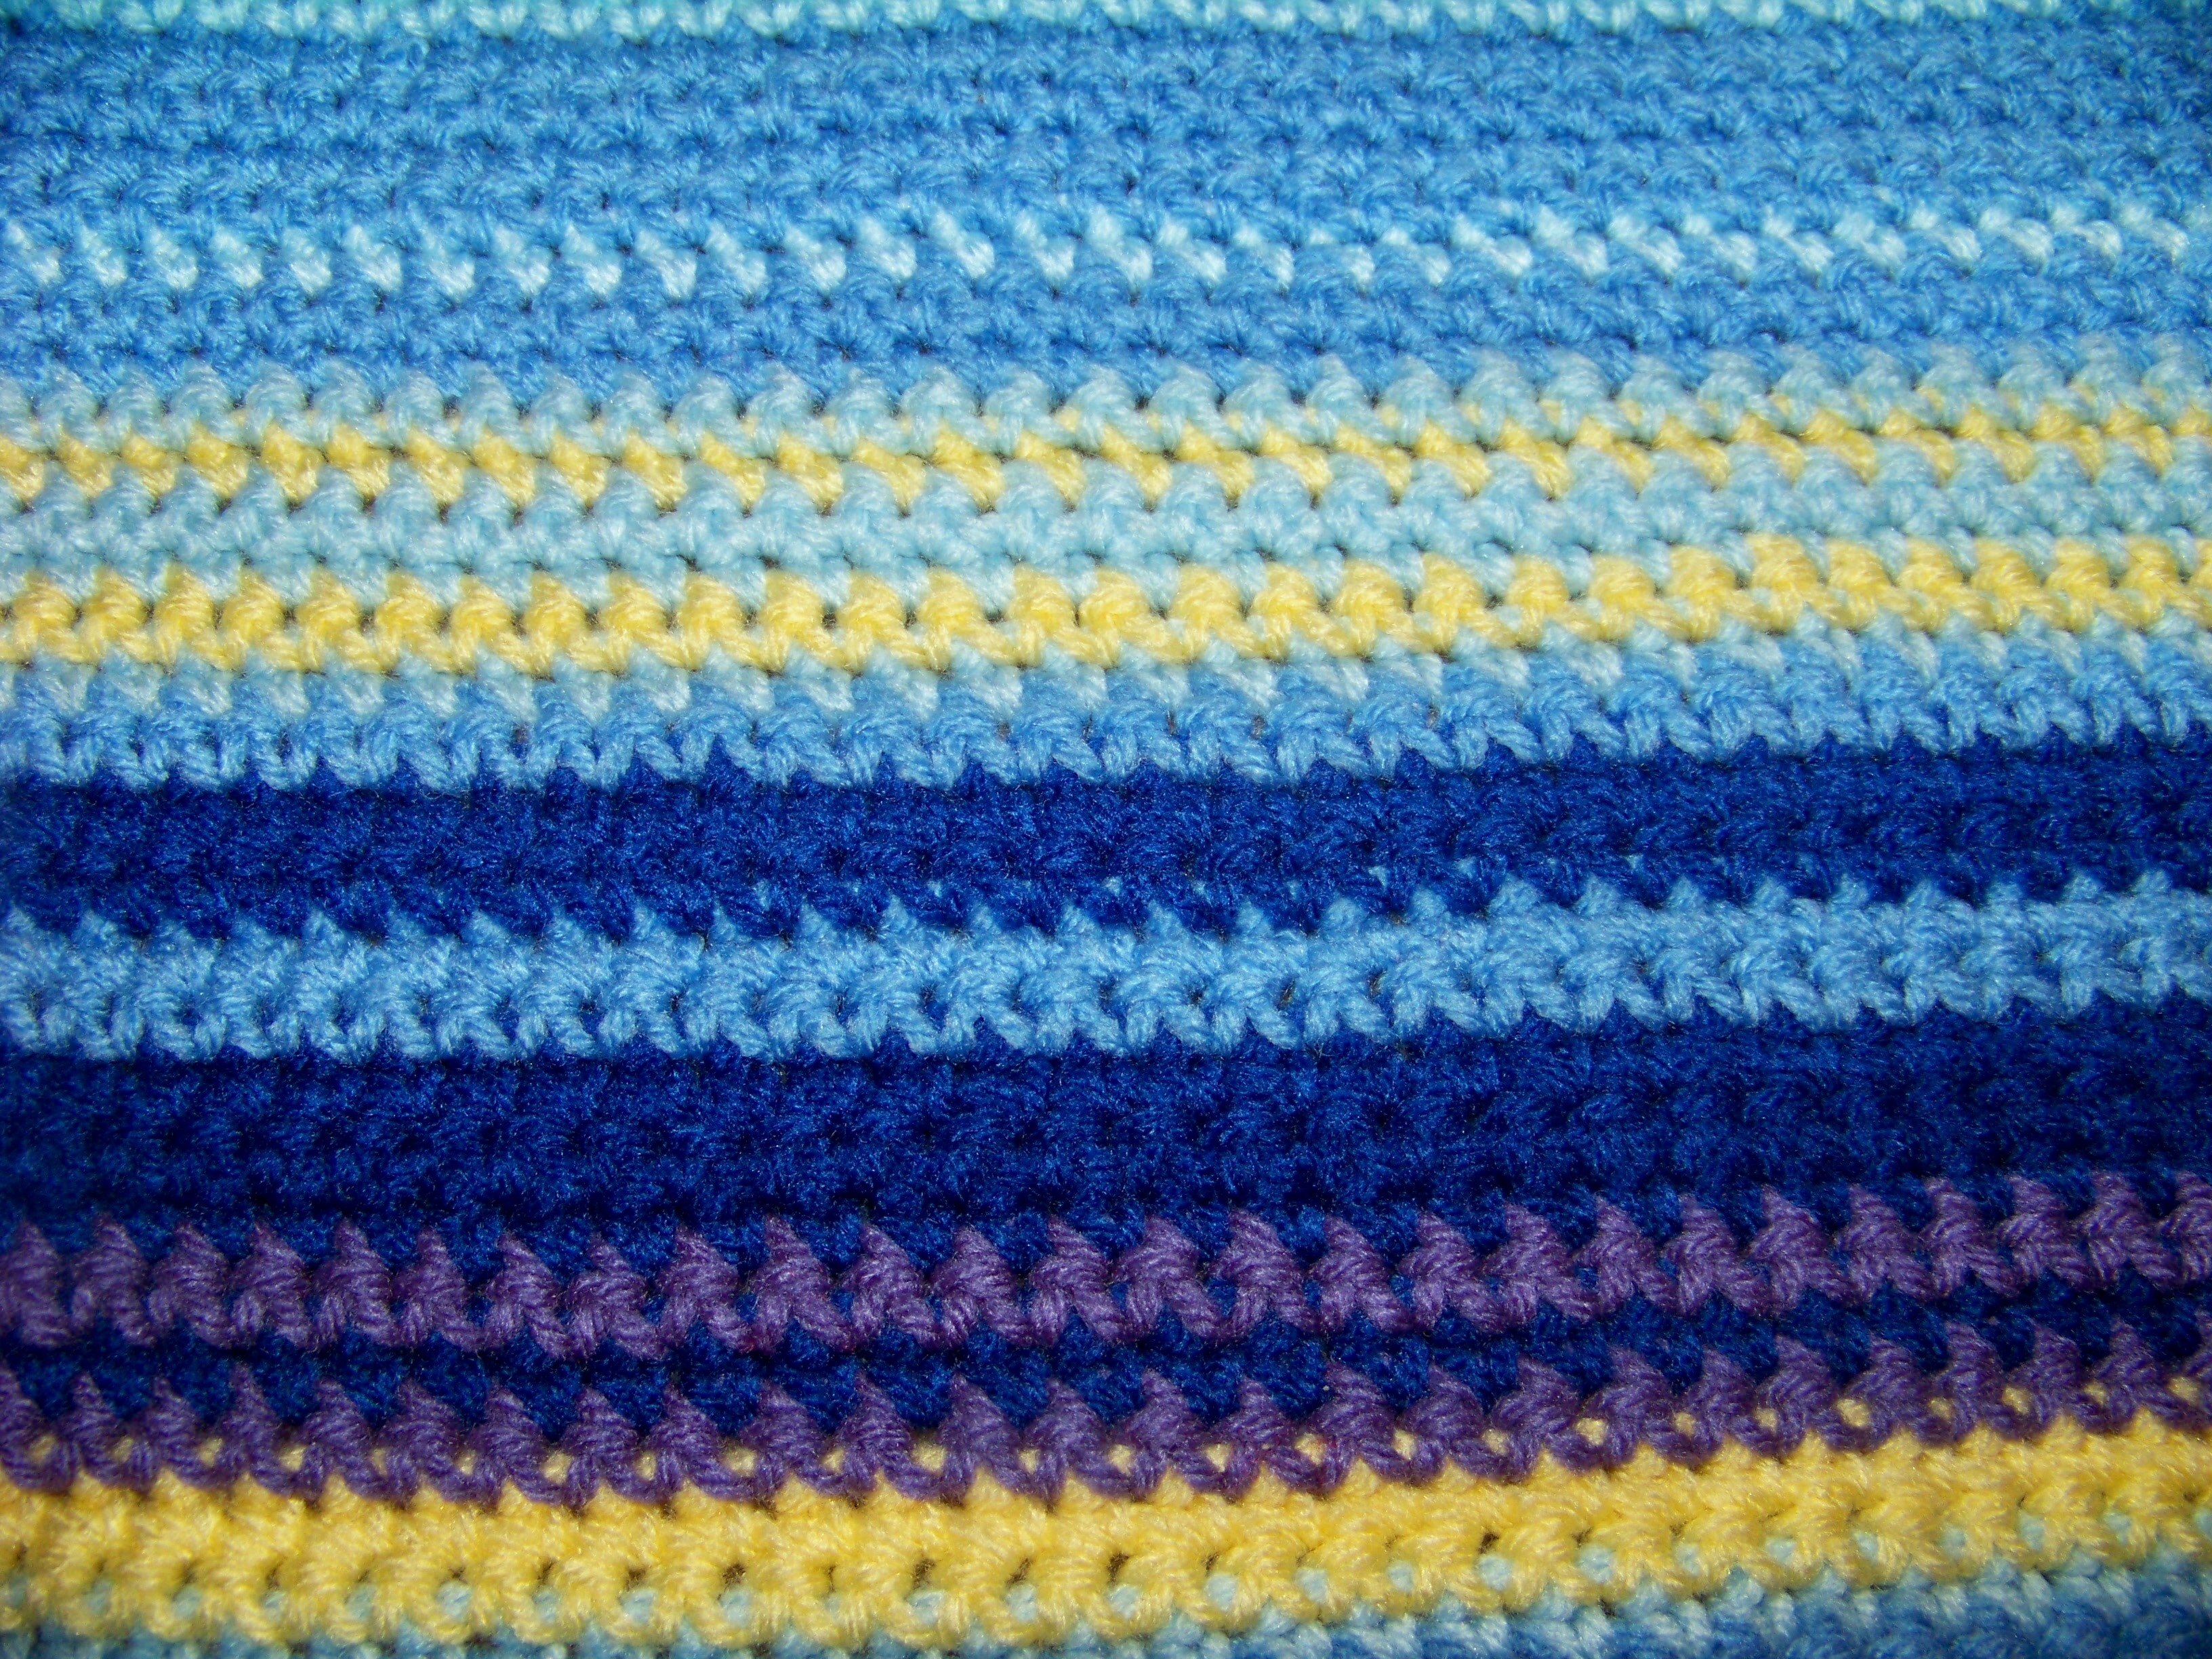 Crochet Quilt Stitch : Crocheted Temperature Blanket - Stitching in the Woods